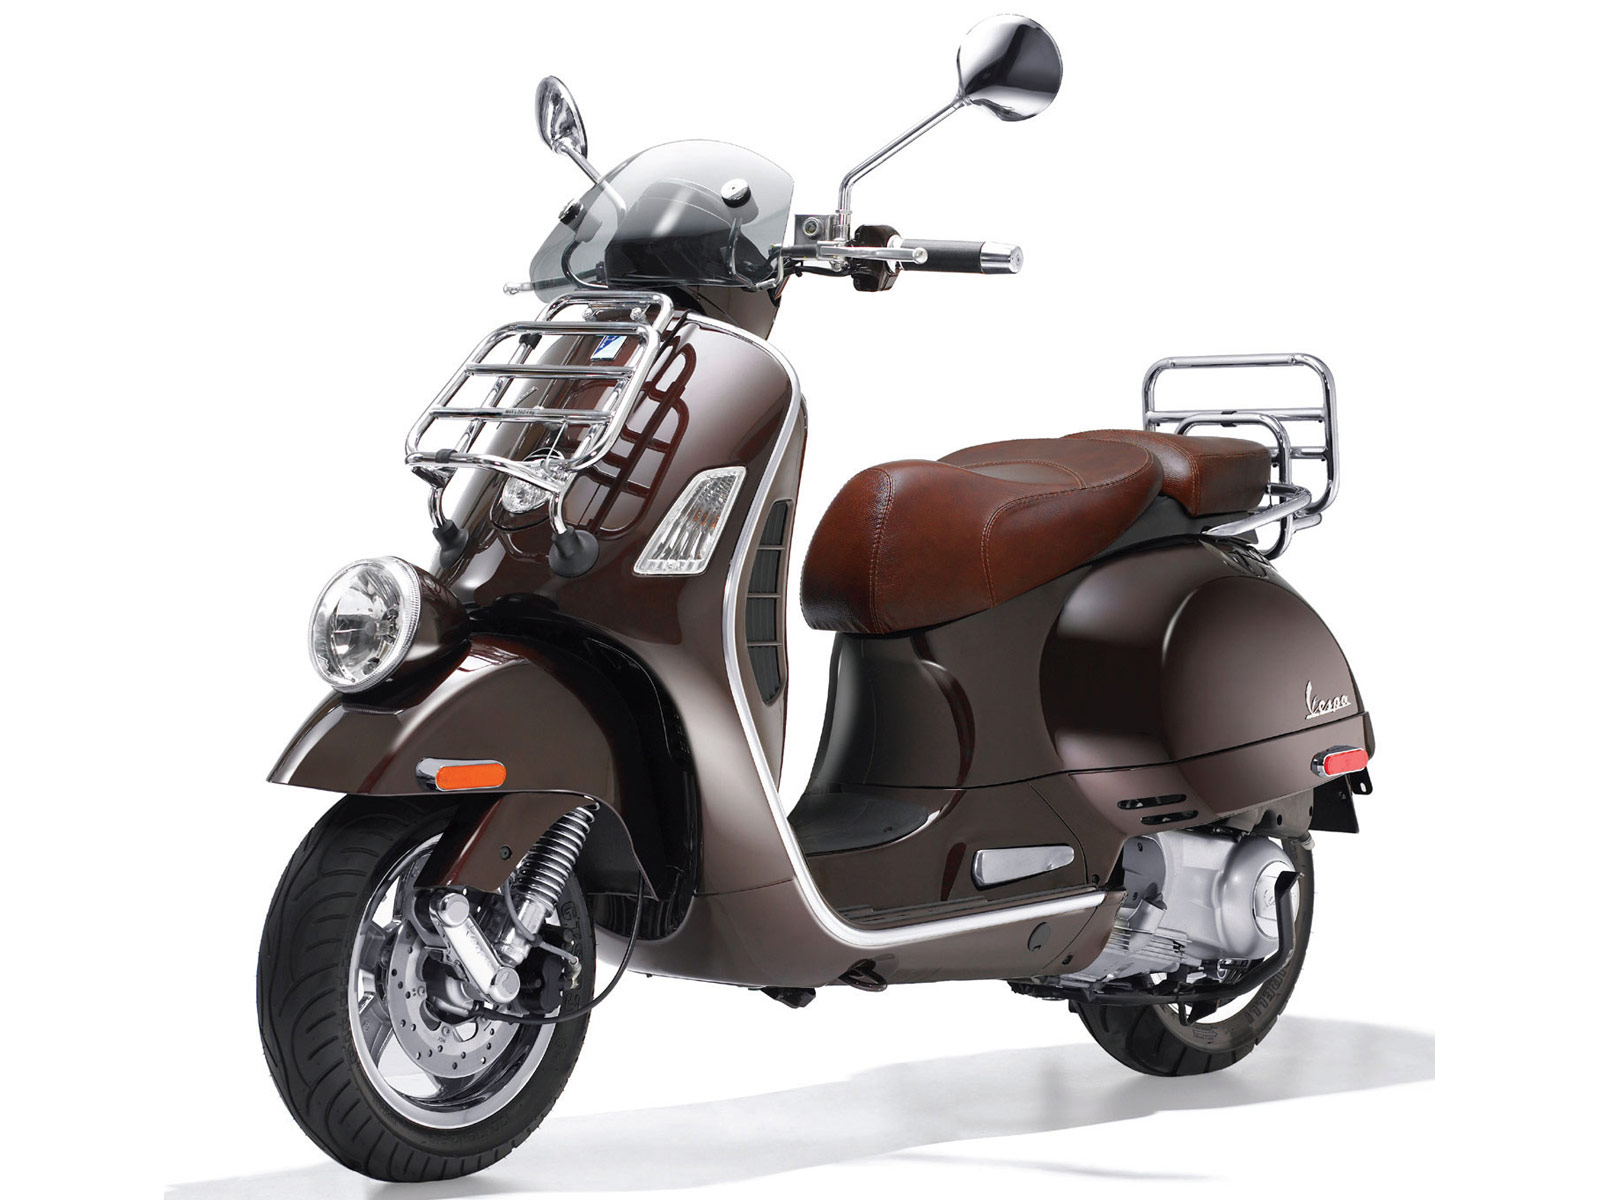 2011 VESPA GTV300 scooter pictures and specifications